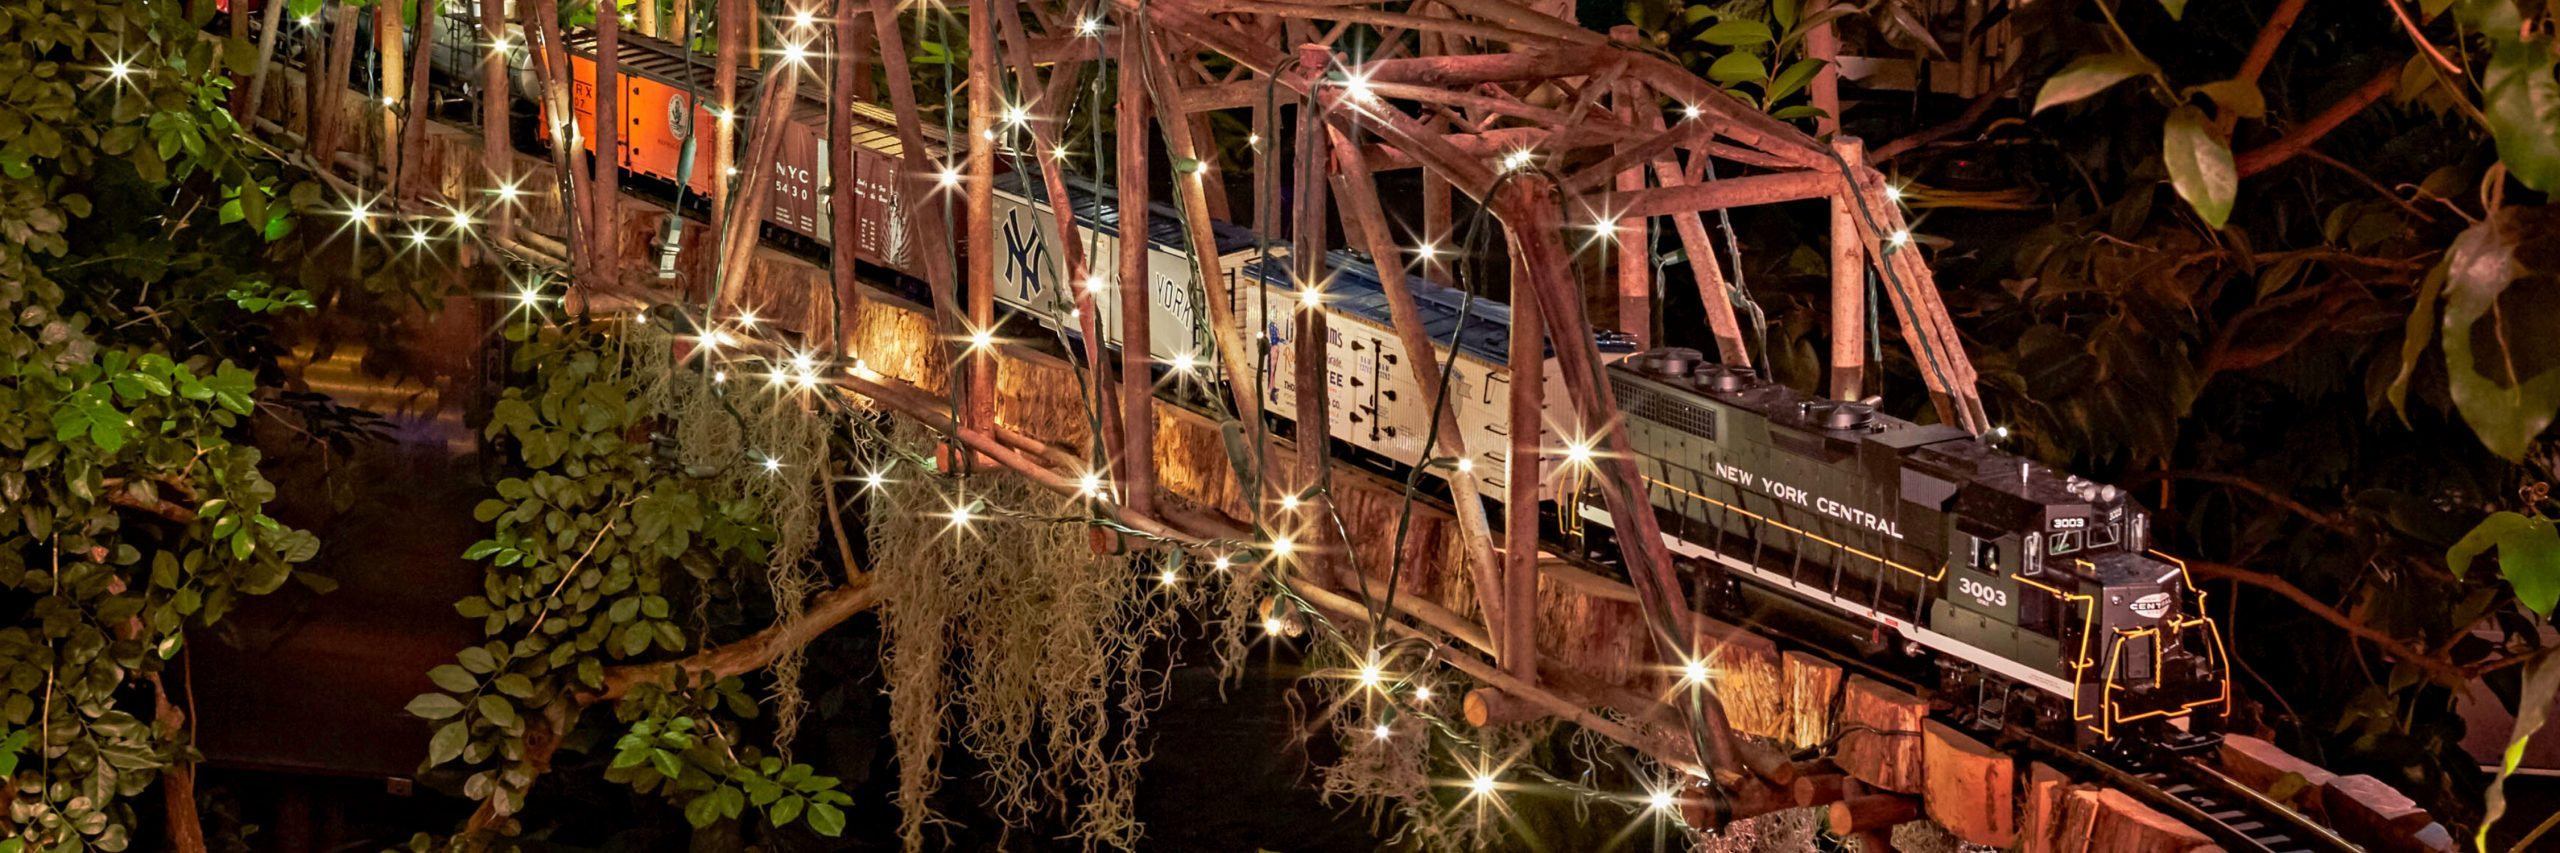 Deals Early Bird Tickets Available Now For 2018 Holiday Train Show At The New York Botanical